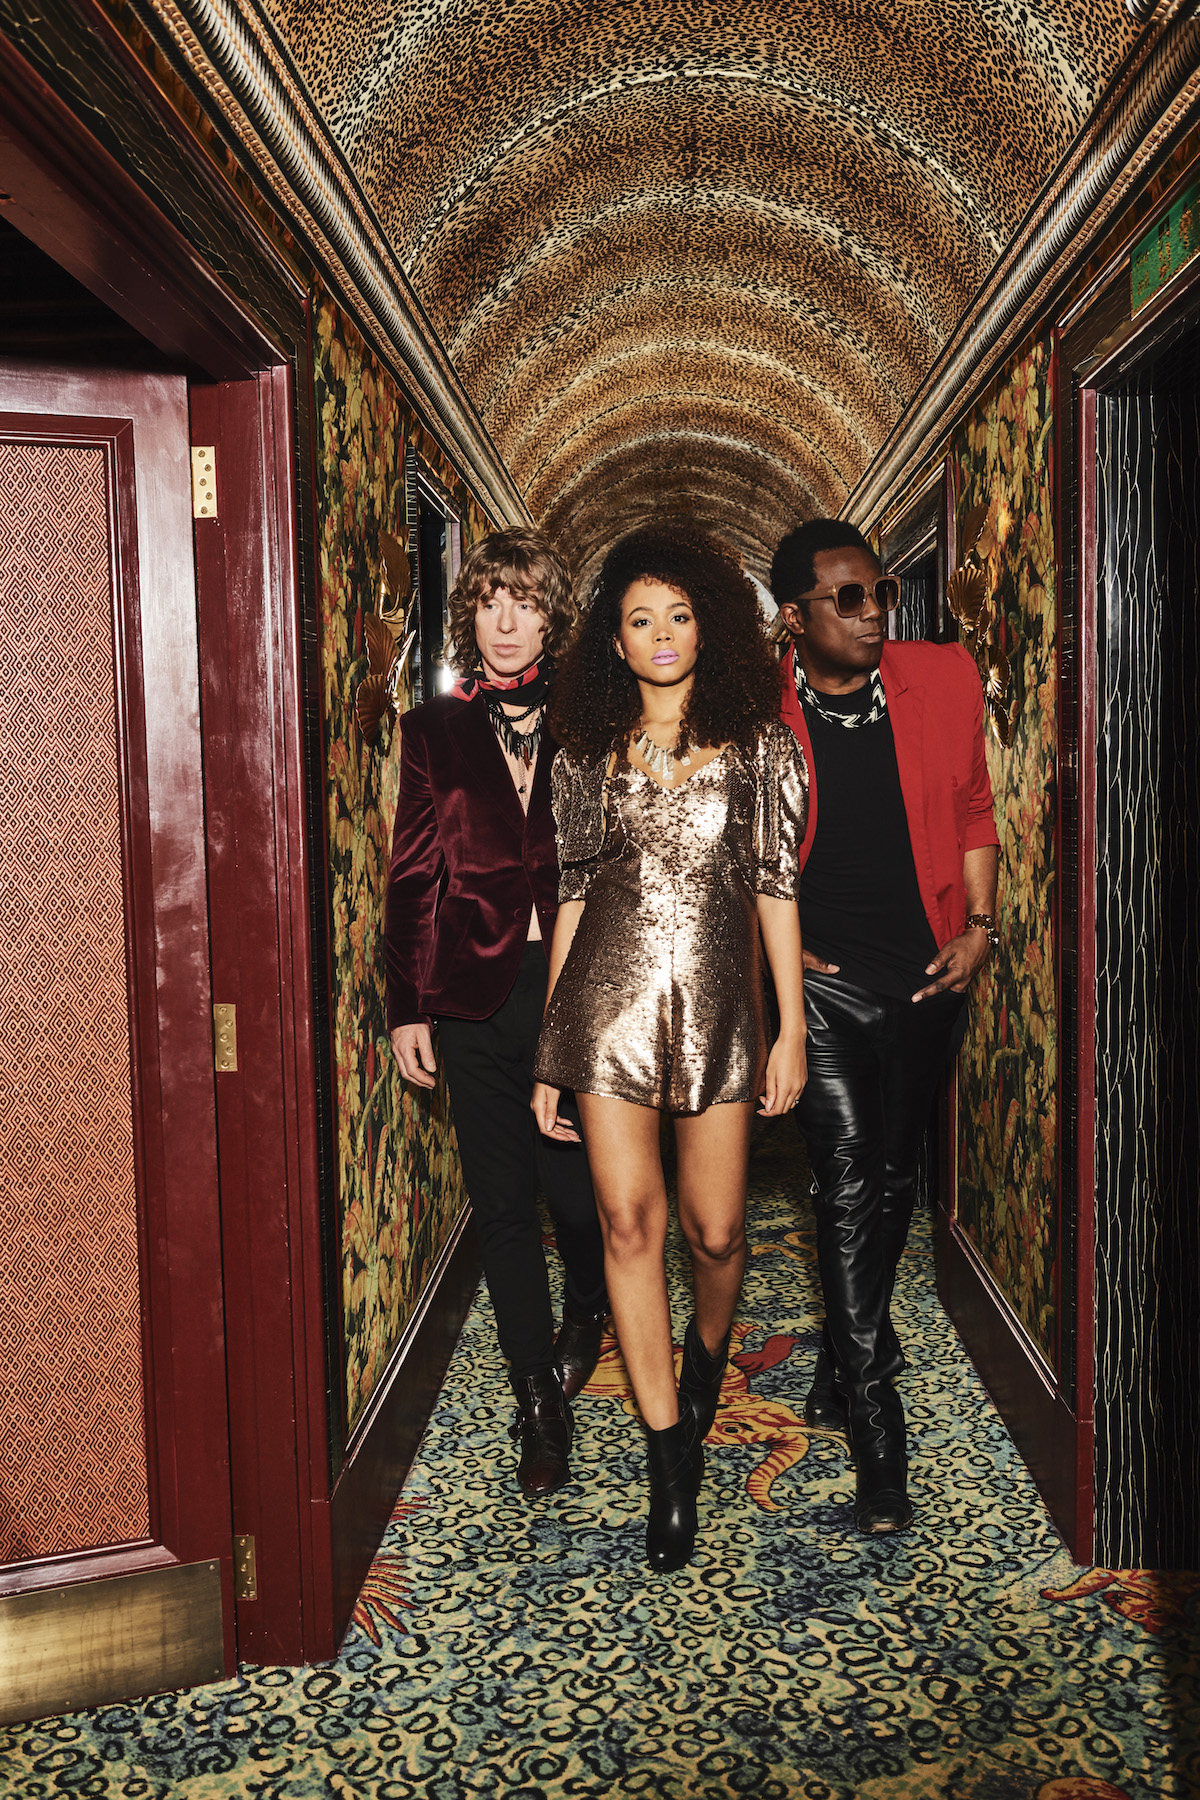 The Brand New Heavies (Deans Chalkleys)